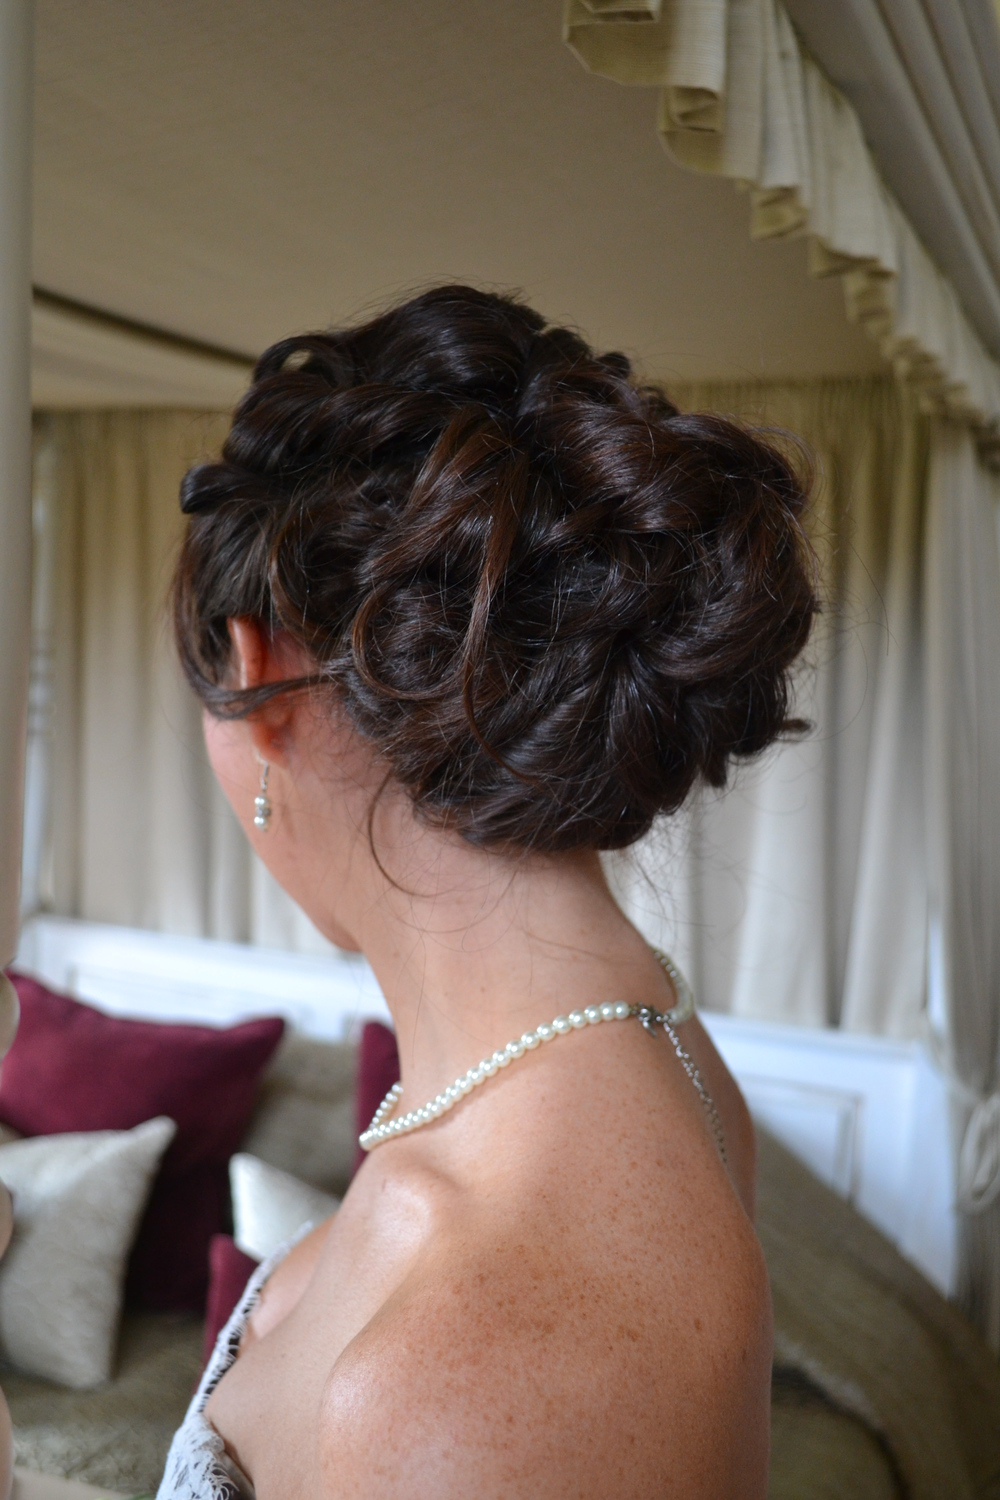 Curly Bridesmaid'sHair Pinned Up